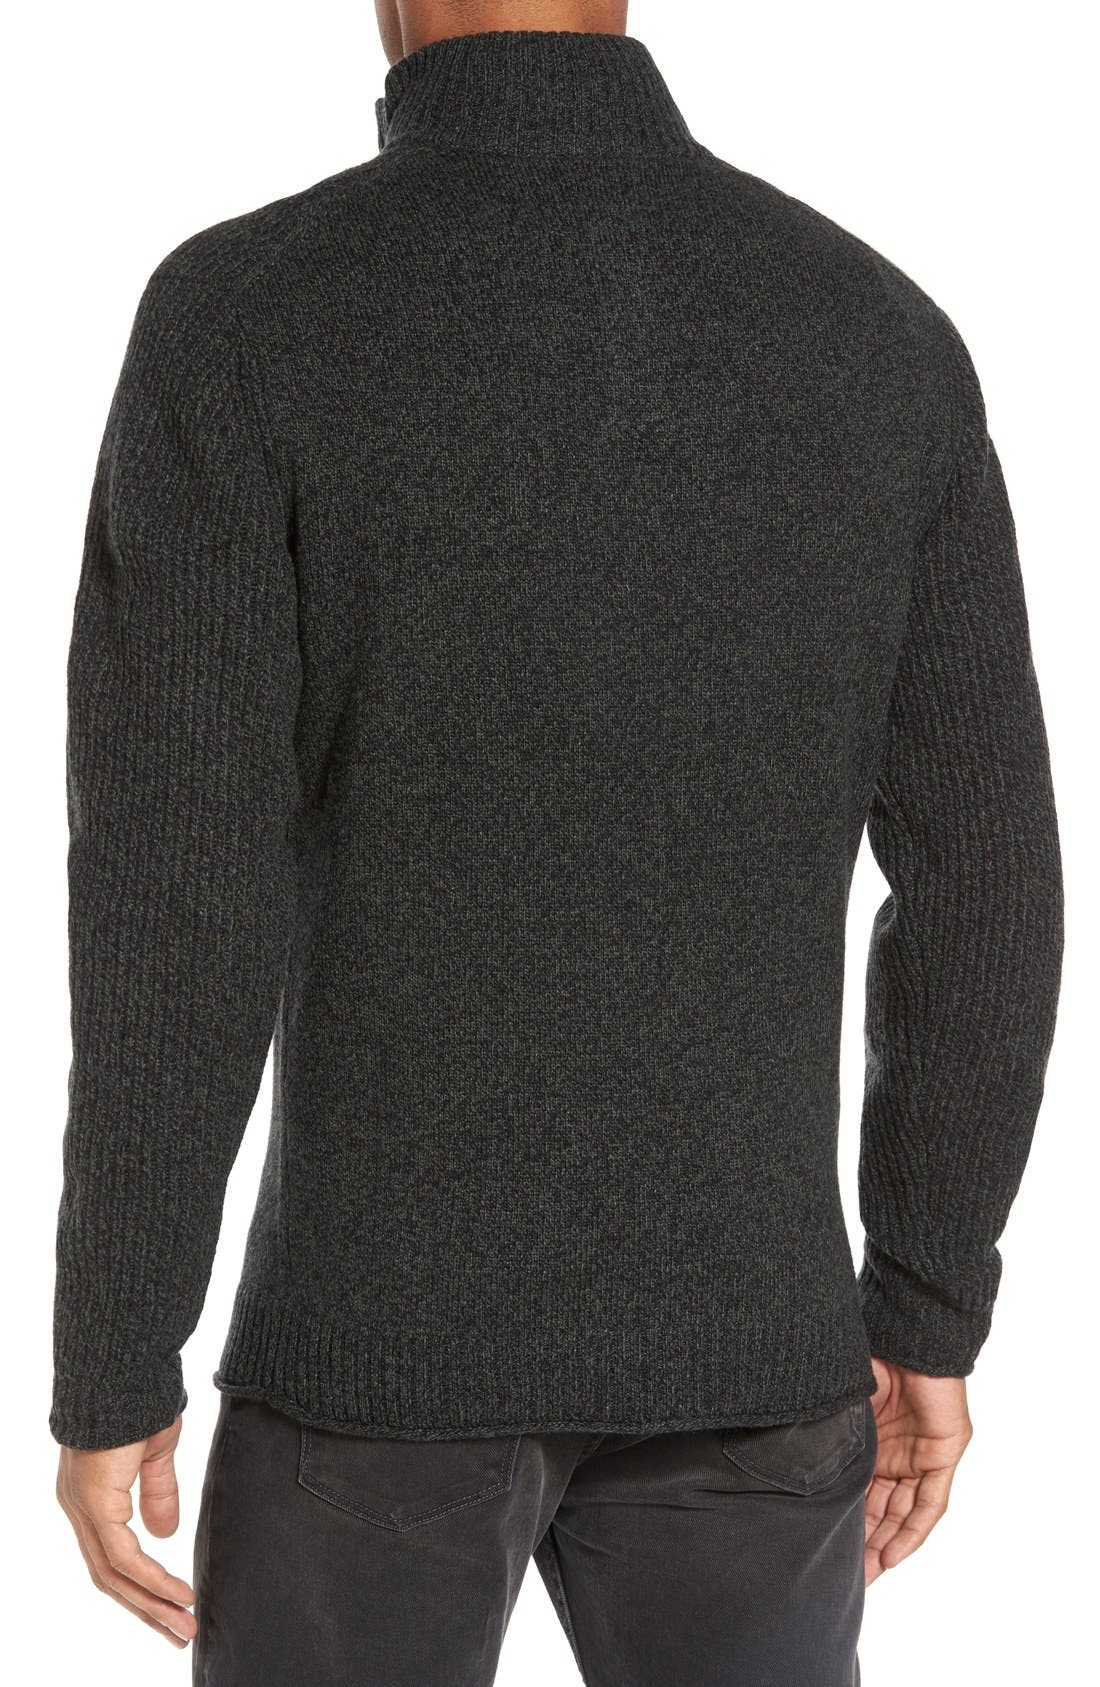 Birkenhead Mock Neck Sweater,                             Alternate thumbnail 2, color,                             Forest